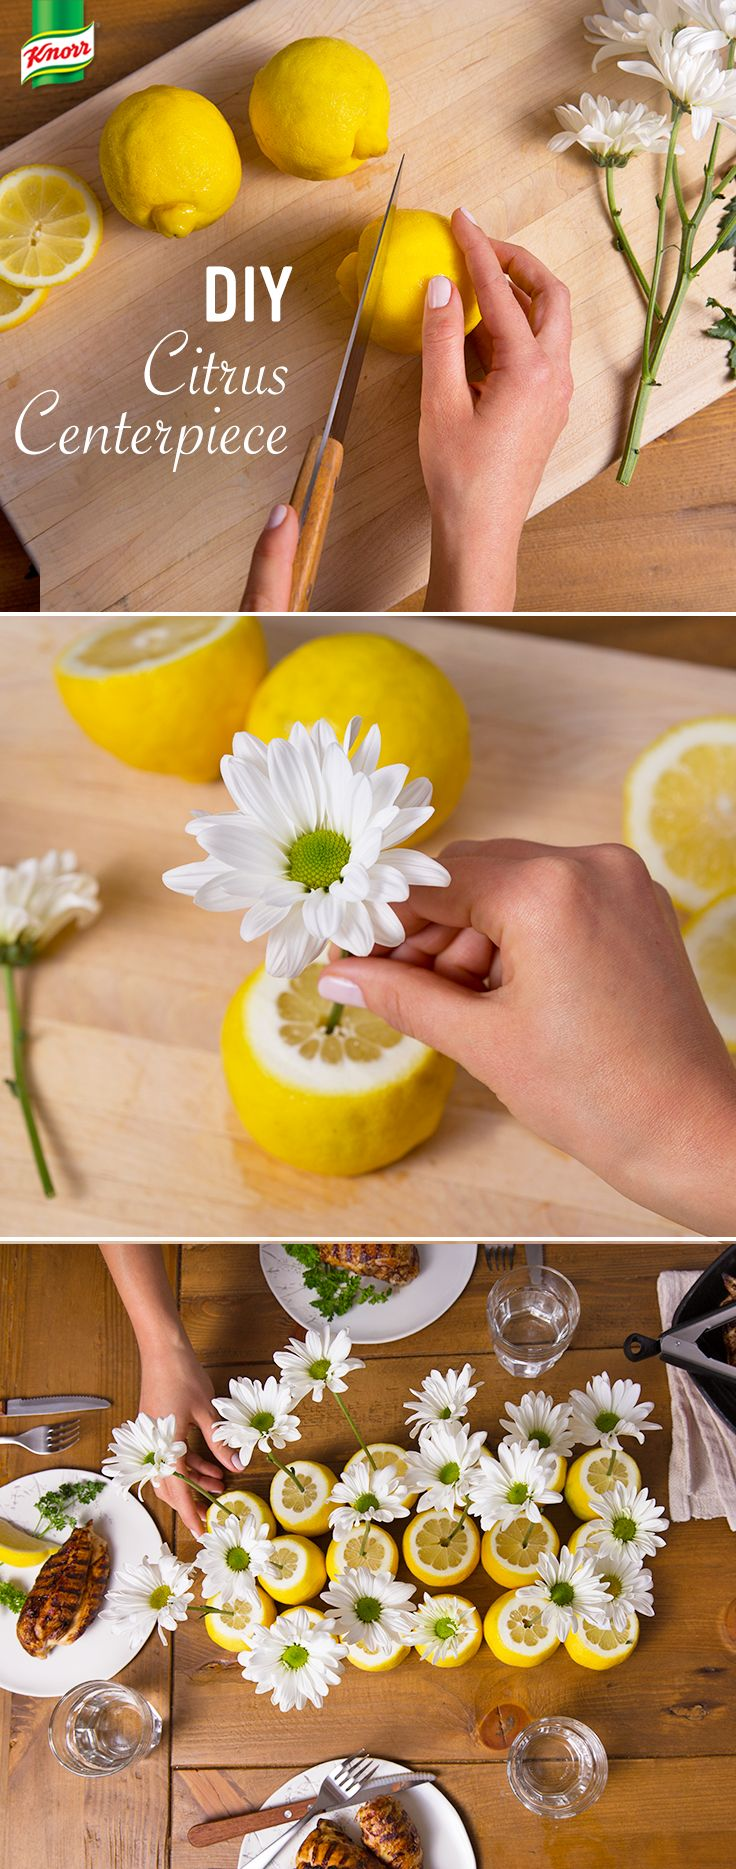 Want a show-stopping yet simple party table decorating idea? Knorr knows the…